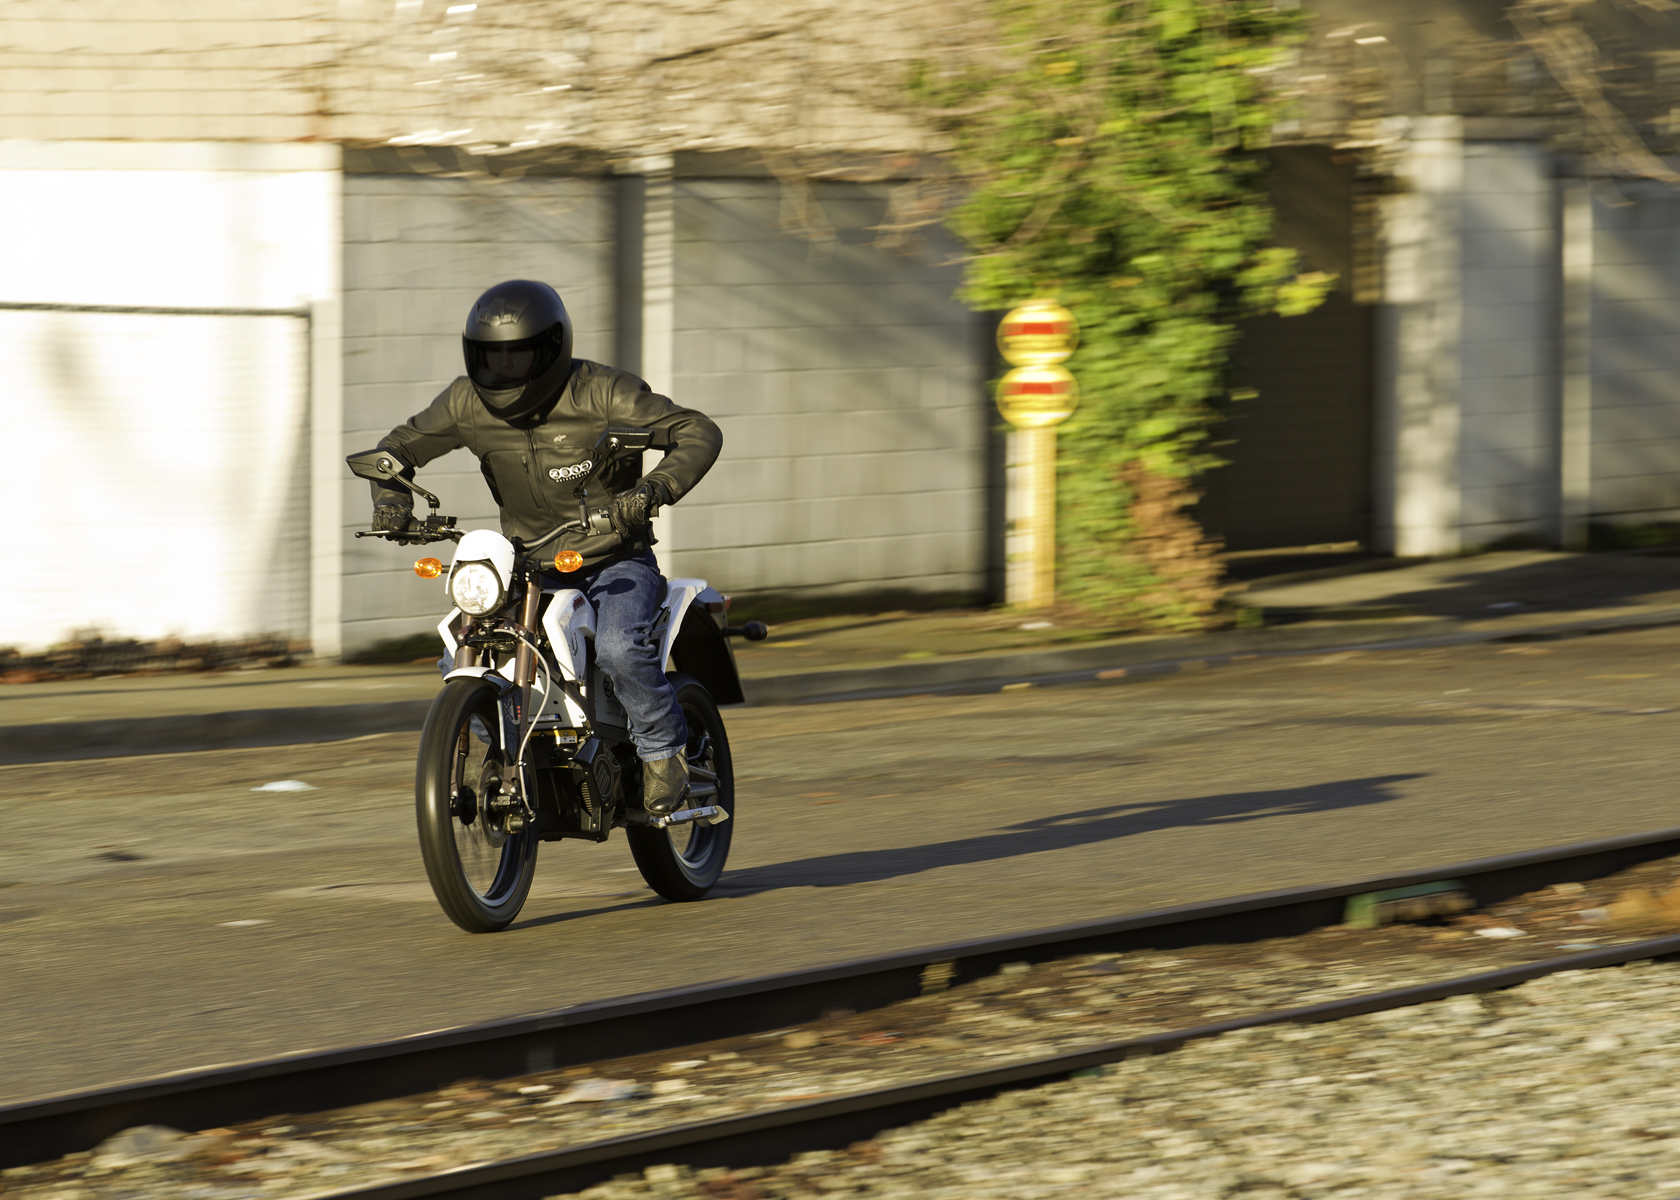 2011 Zero XU Electric Motorcycle: In the City, by Railroad Tracks